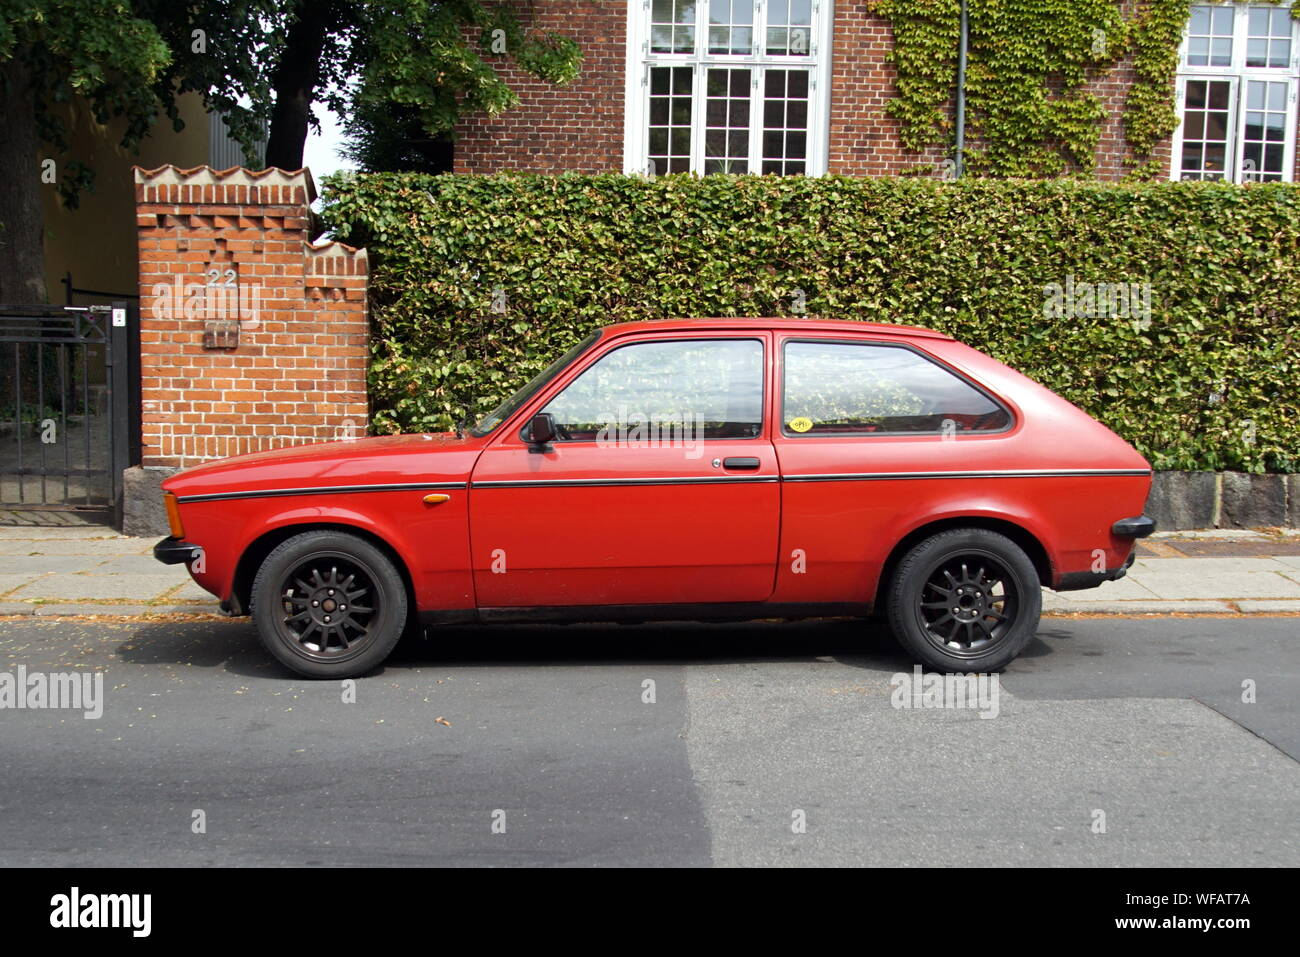 Opel Kadett C Coupe High Resolution Stock Photography And Images Alamy